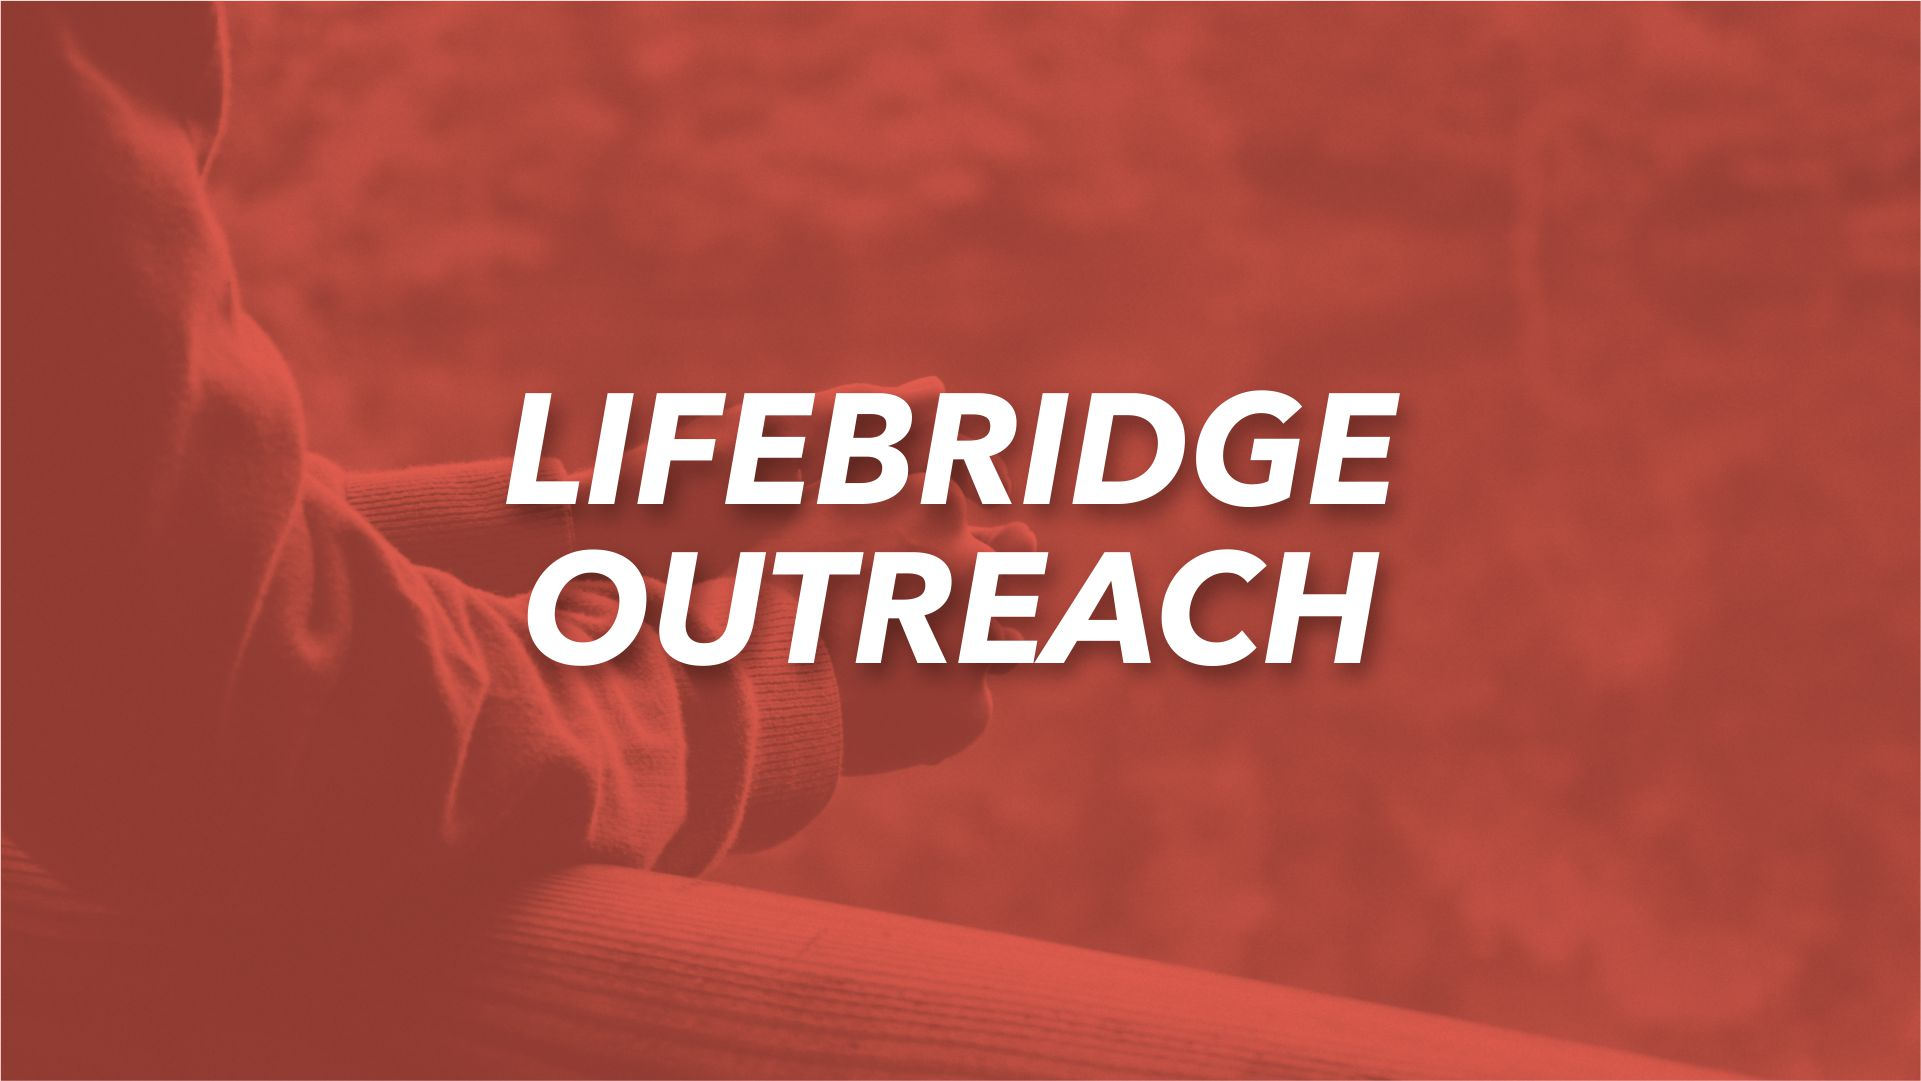 The Lifebridge Ministry exist to share the love of Jesus with those in the church and the community who are experiencing crisis or difficult situations in life (i.e. poverty, divorce, addictions, finances, etc.). This is a ministry movement to help take people from a state of brokenness to transformation.